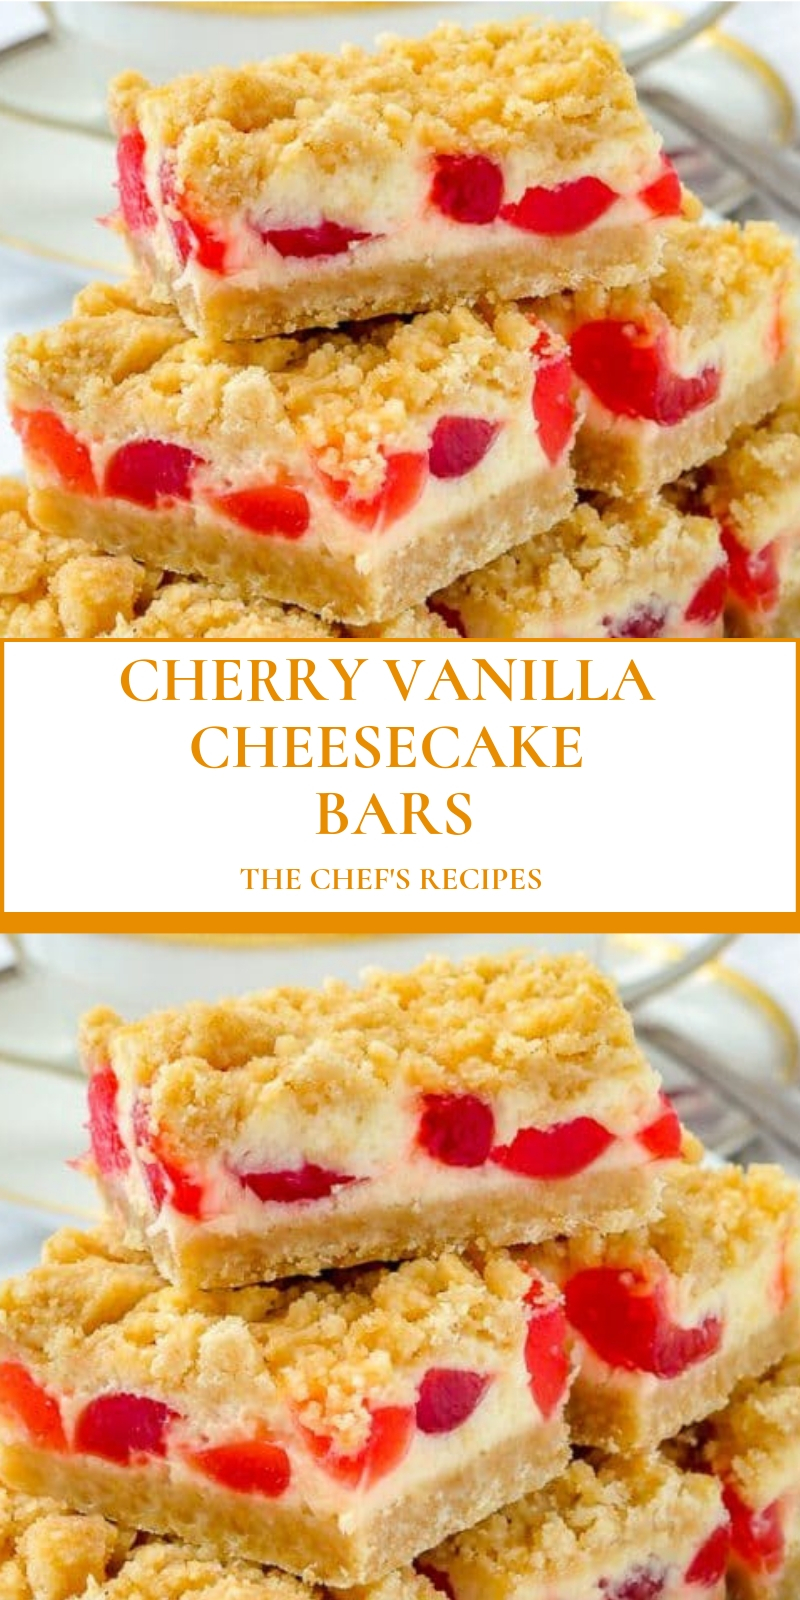 CHERRY VANILLA CHEESECAKE BARS